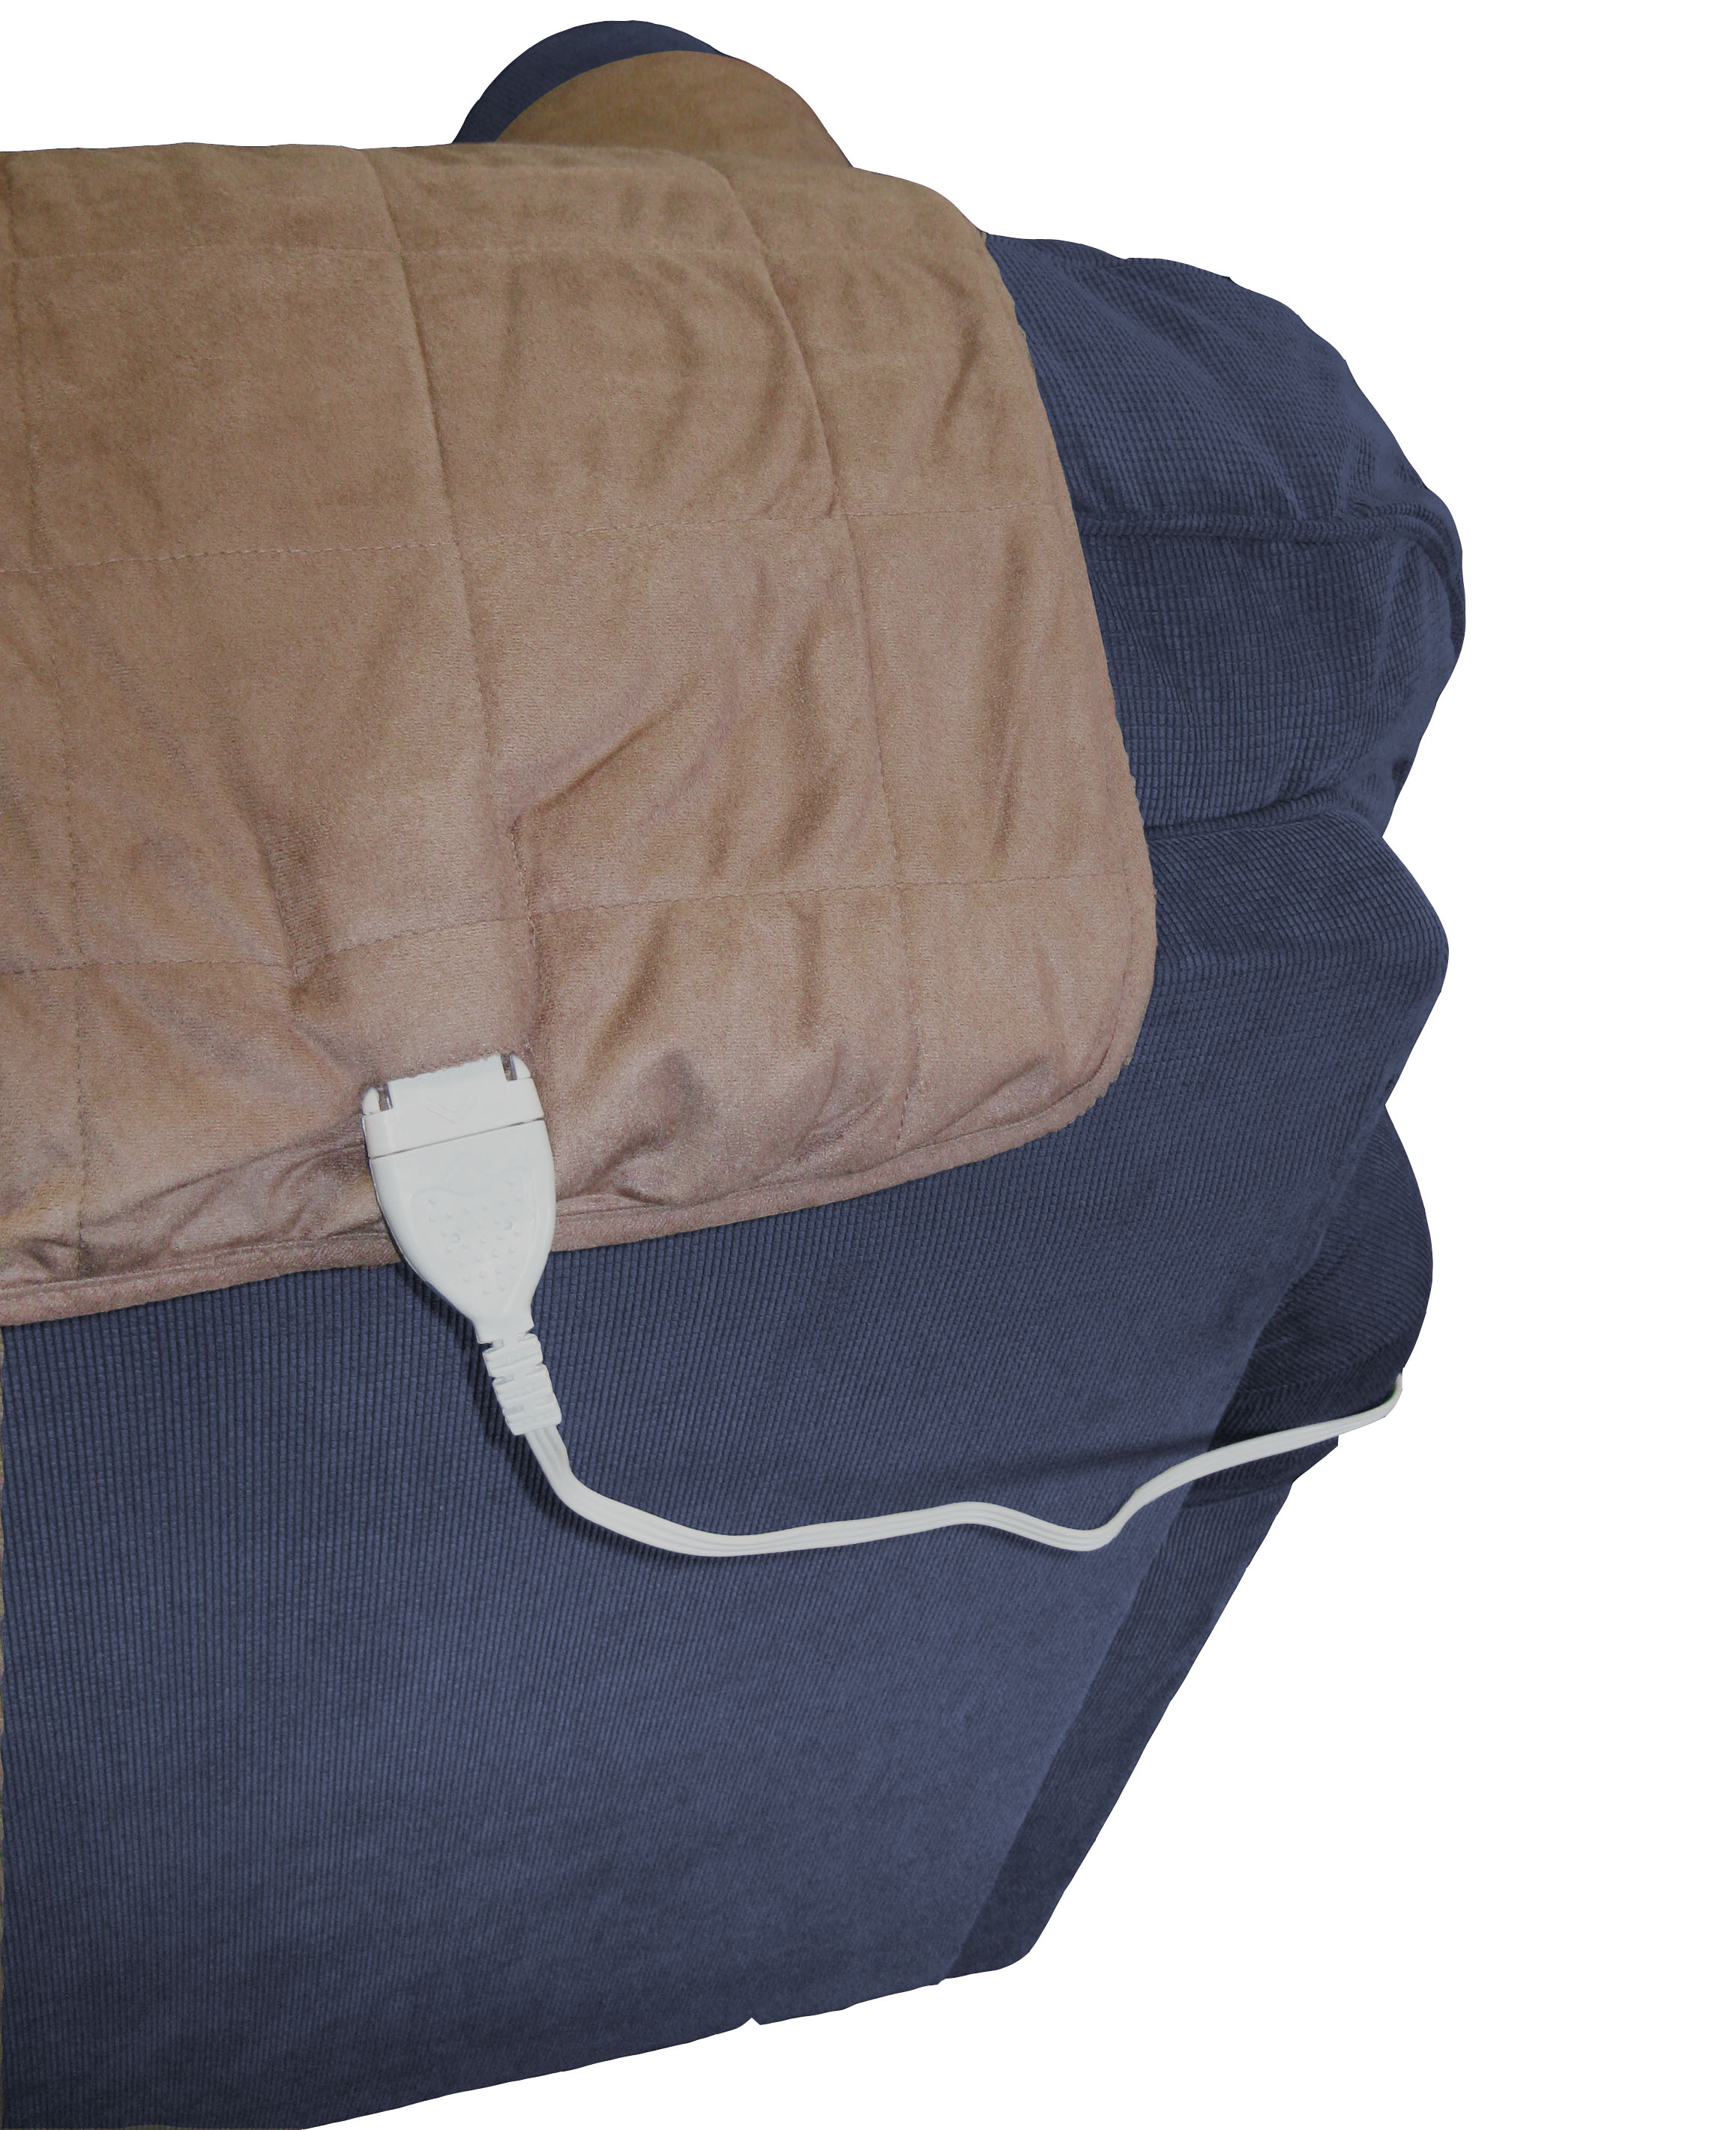 Furniture Protector Heated Electric Sofa Chair Cover